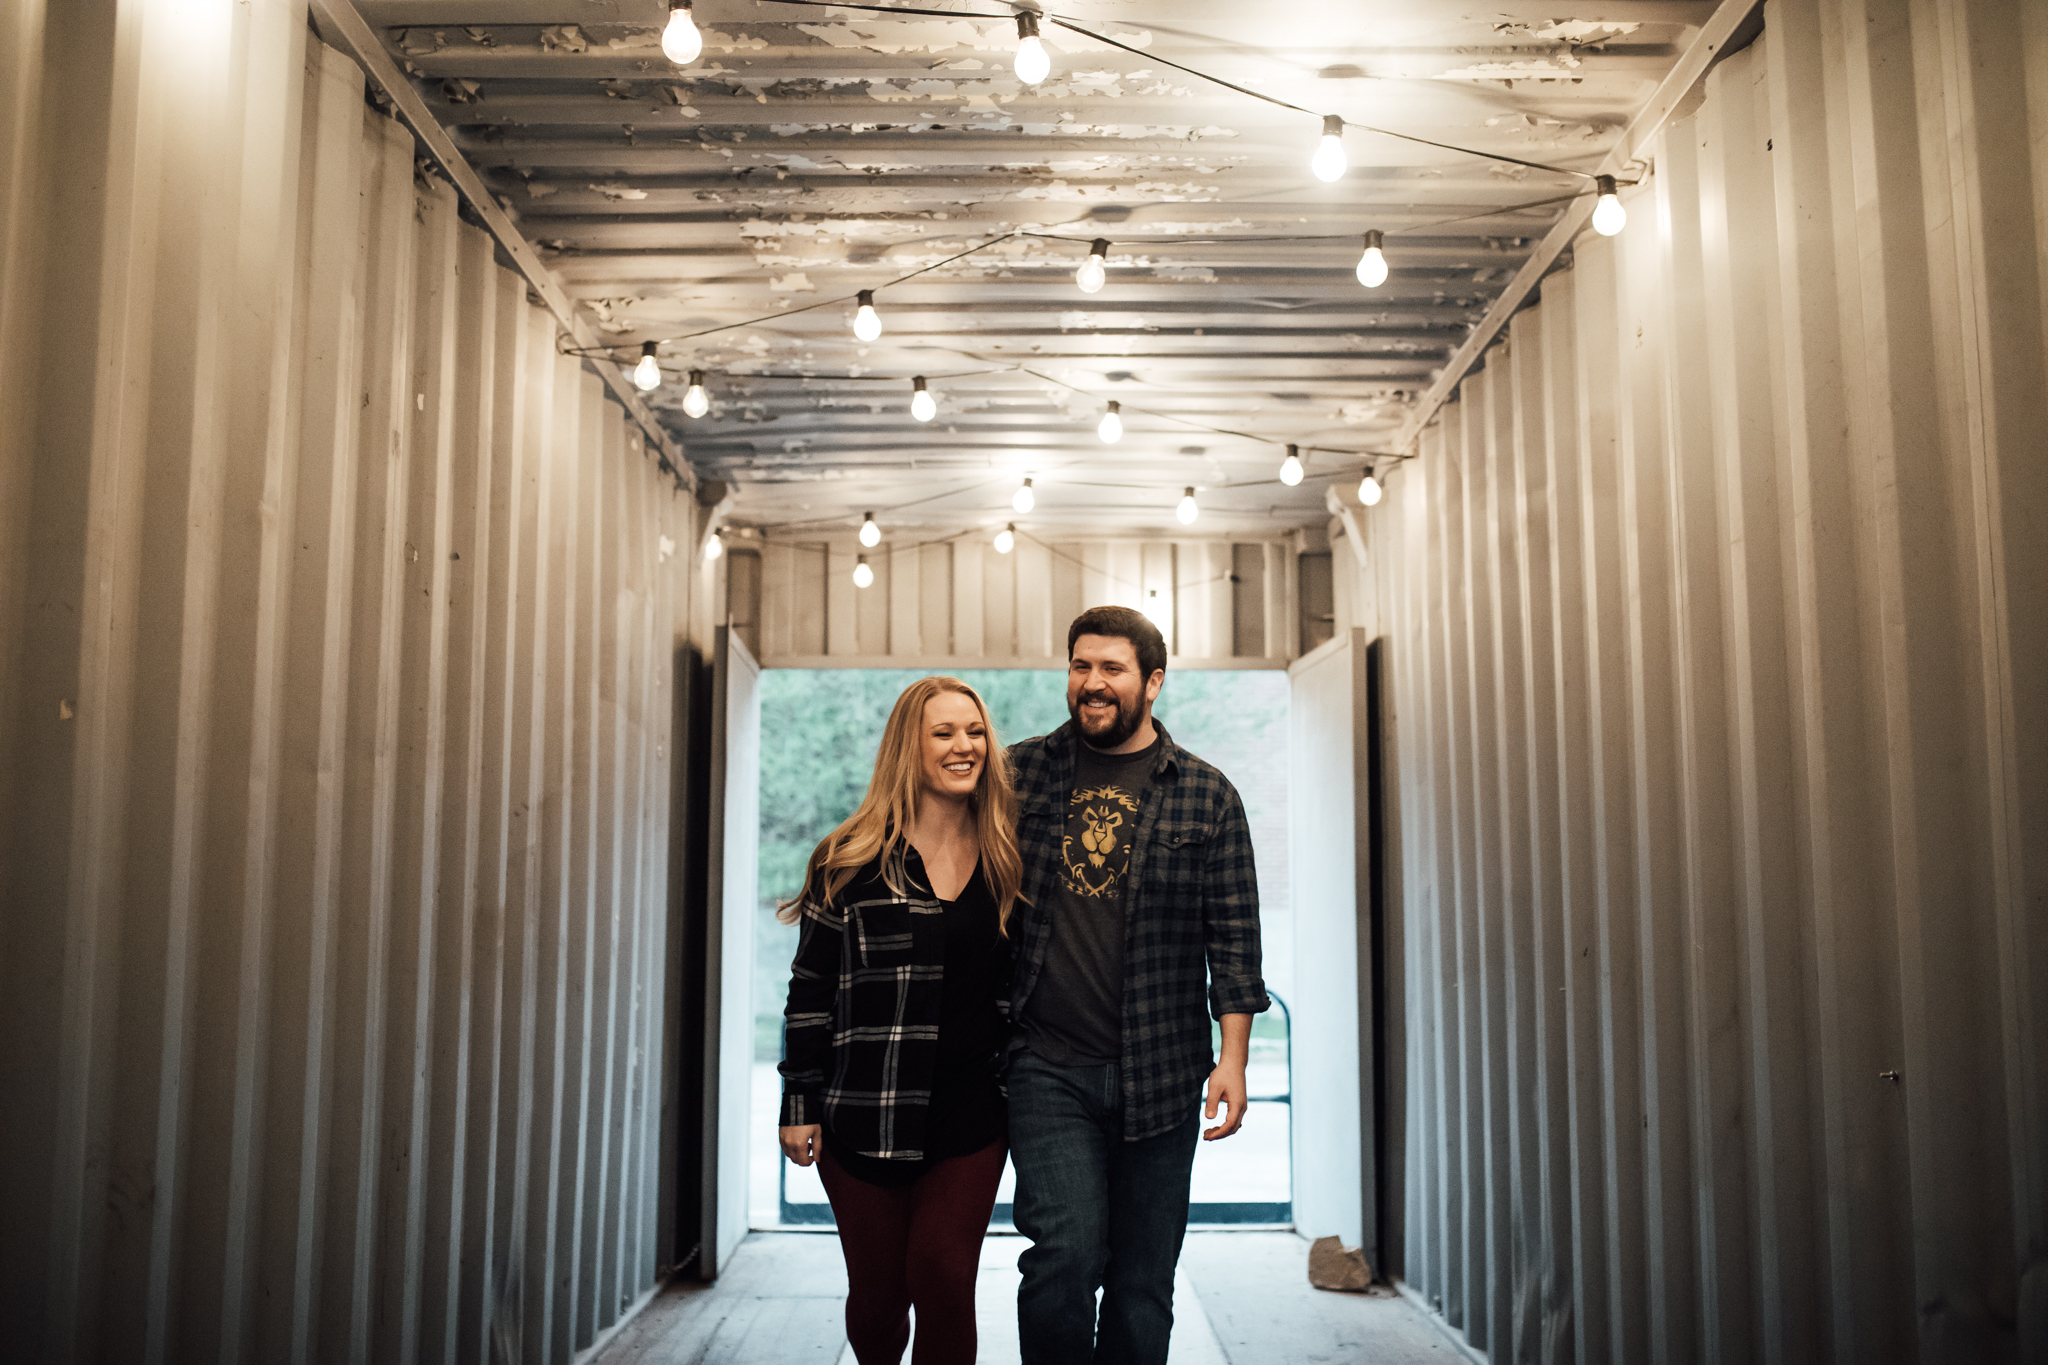 wiseacre-brewing-wedding-photographer-the-warmth-around-you-cassie-cook-photography (30 of 64).jpg